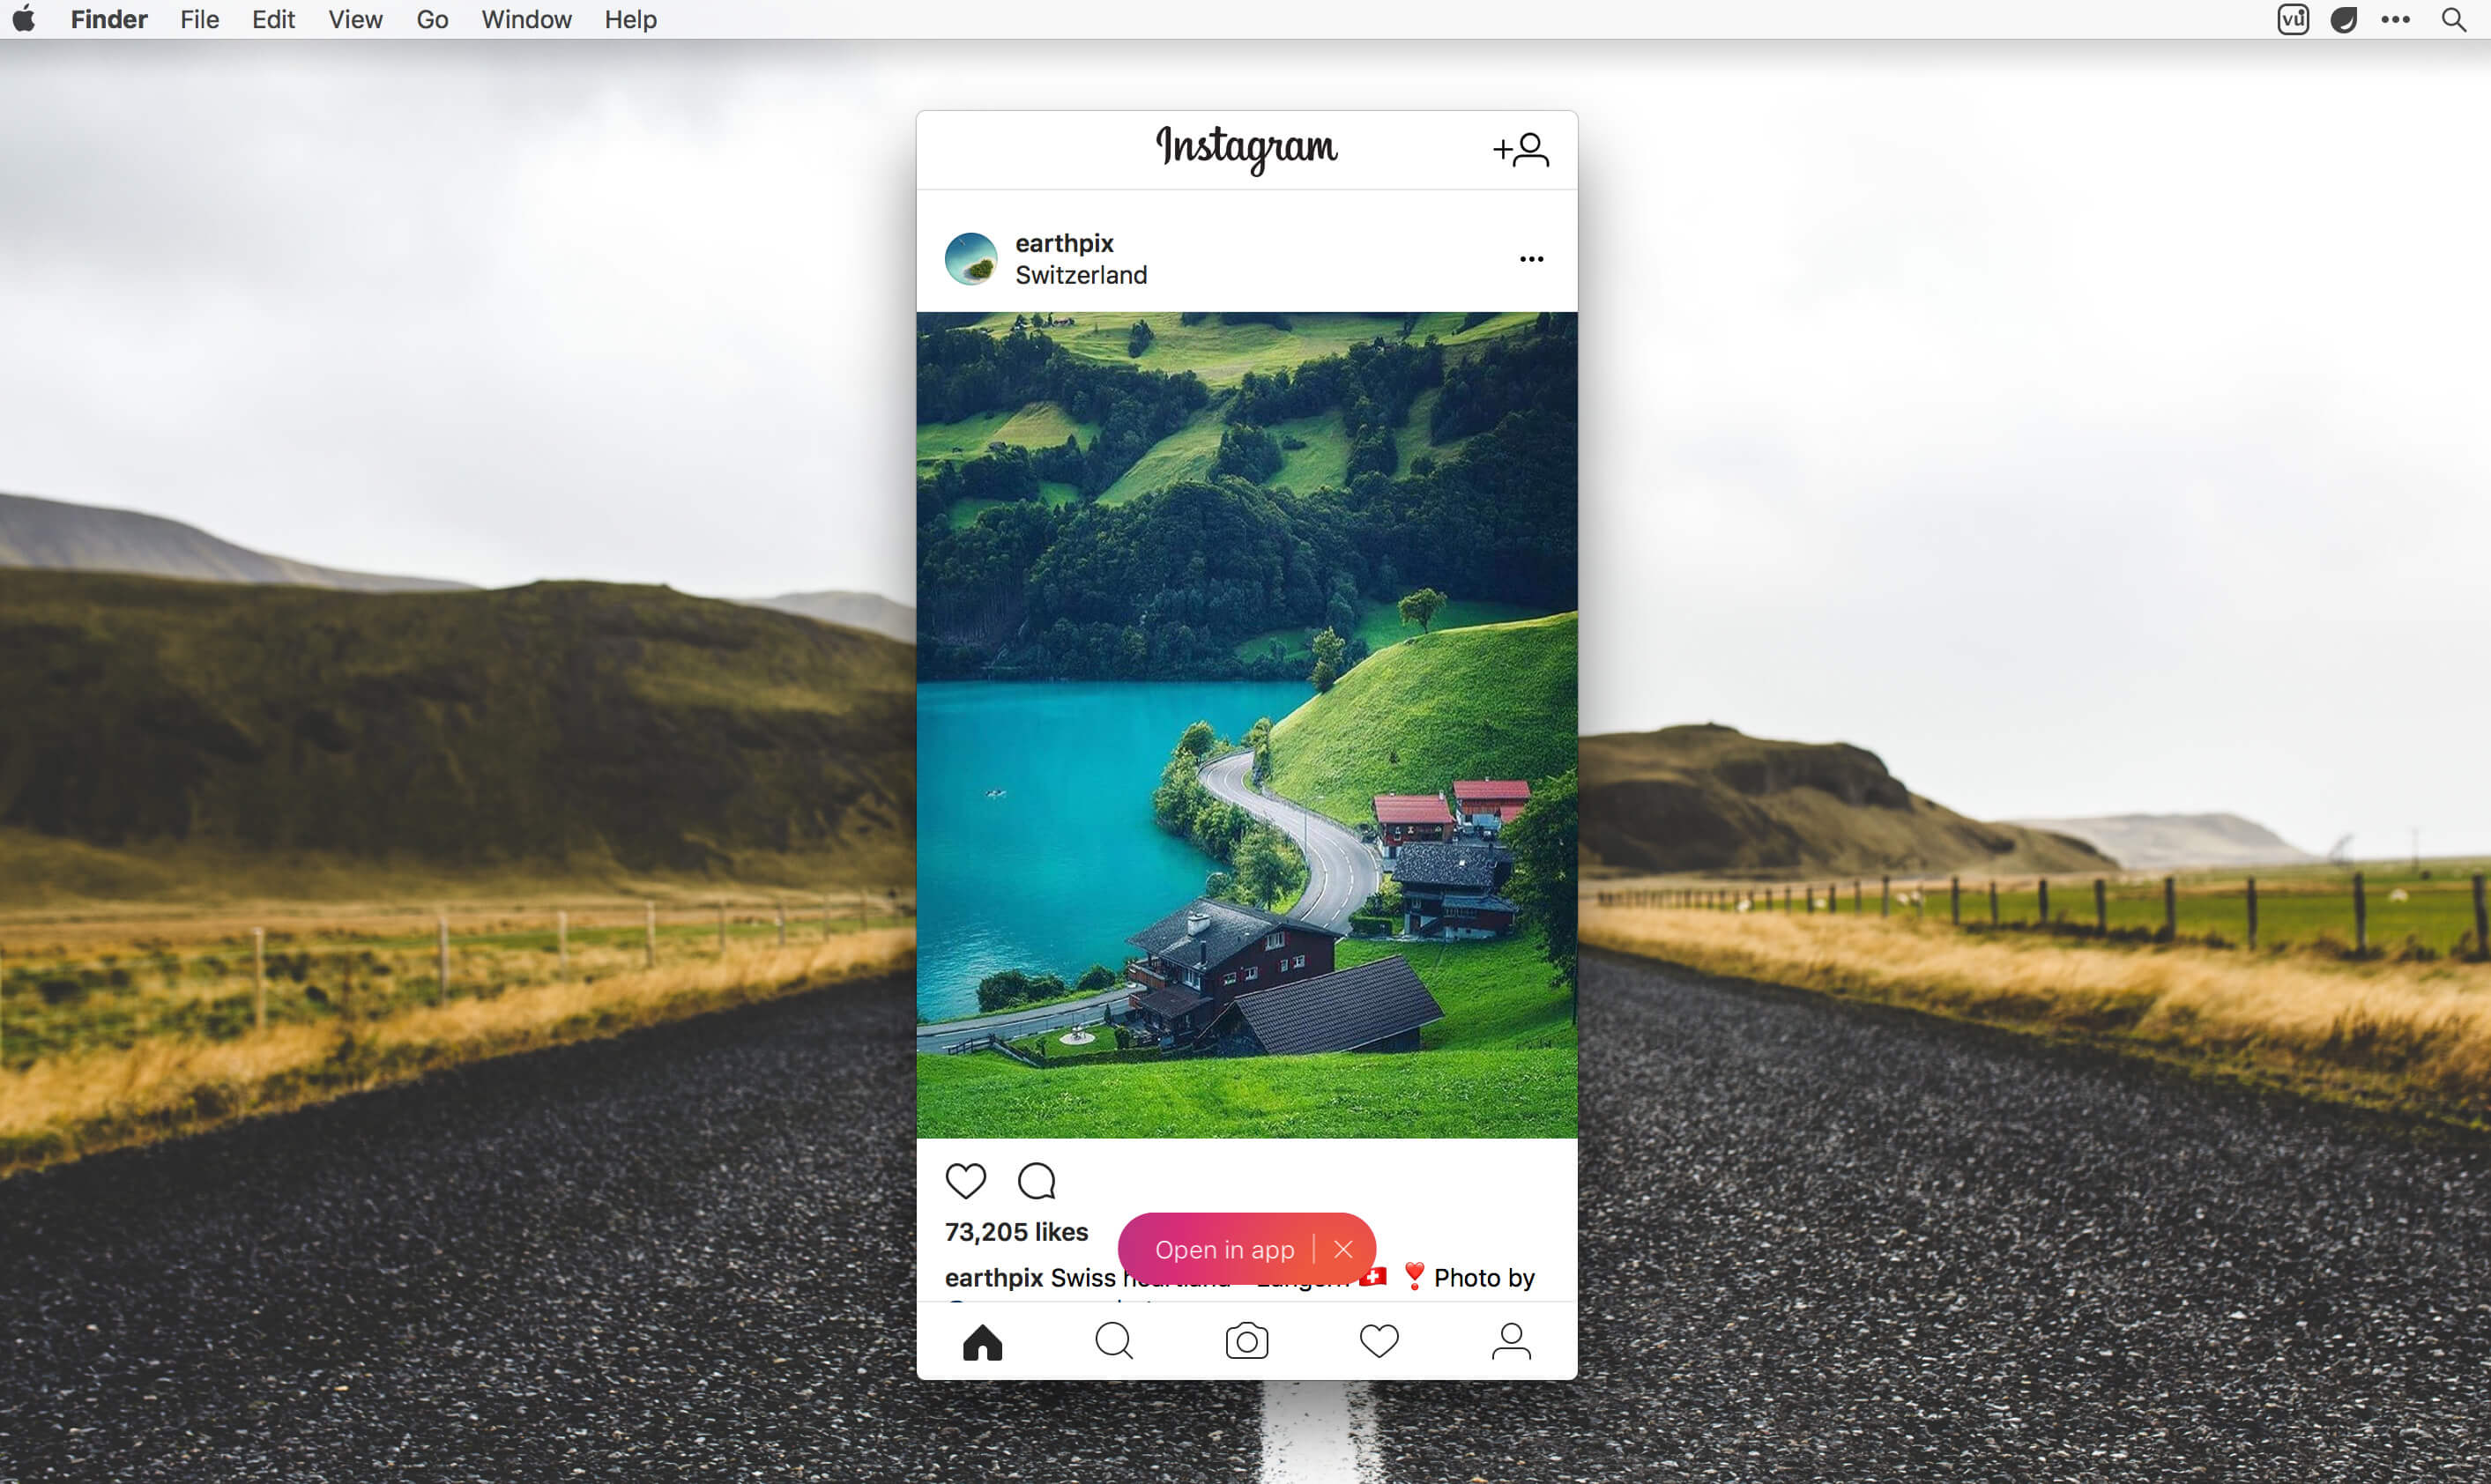 How To Manage Multiple Instagram Accounts From A Desktop Computer